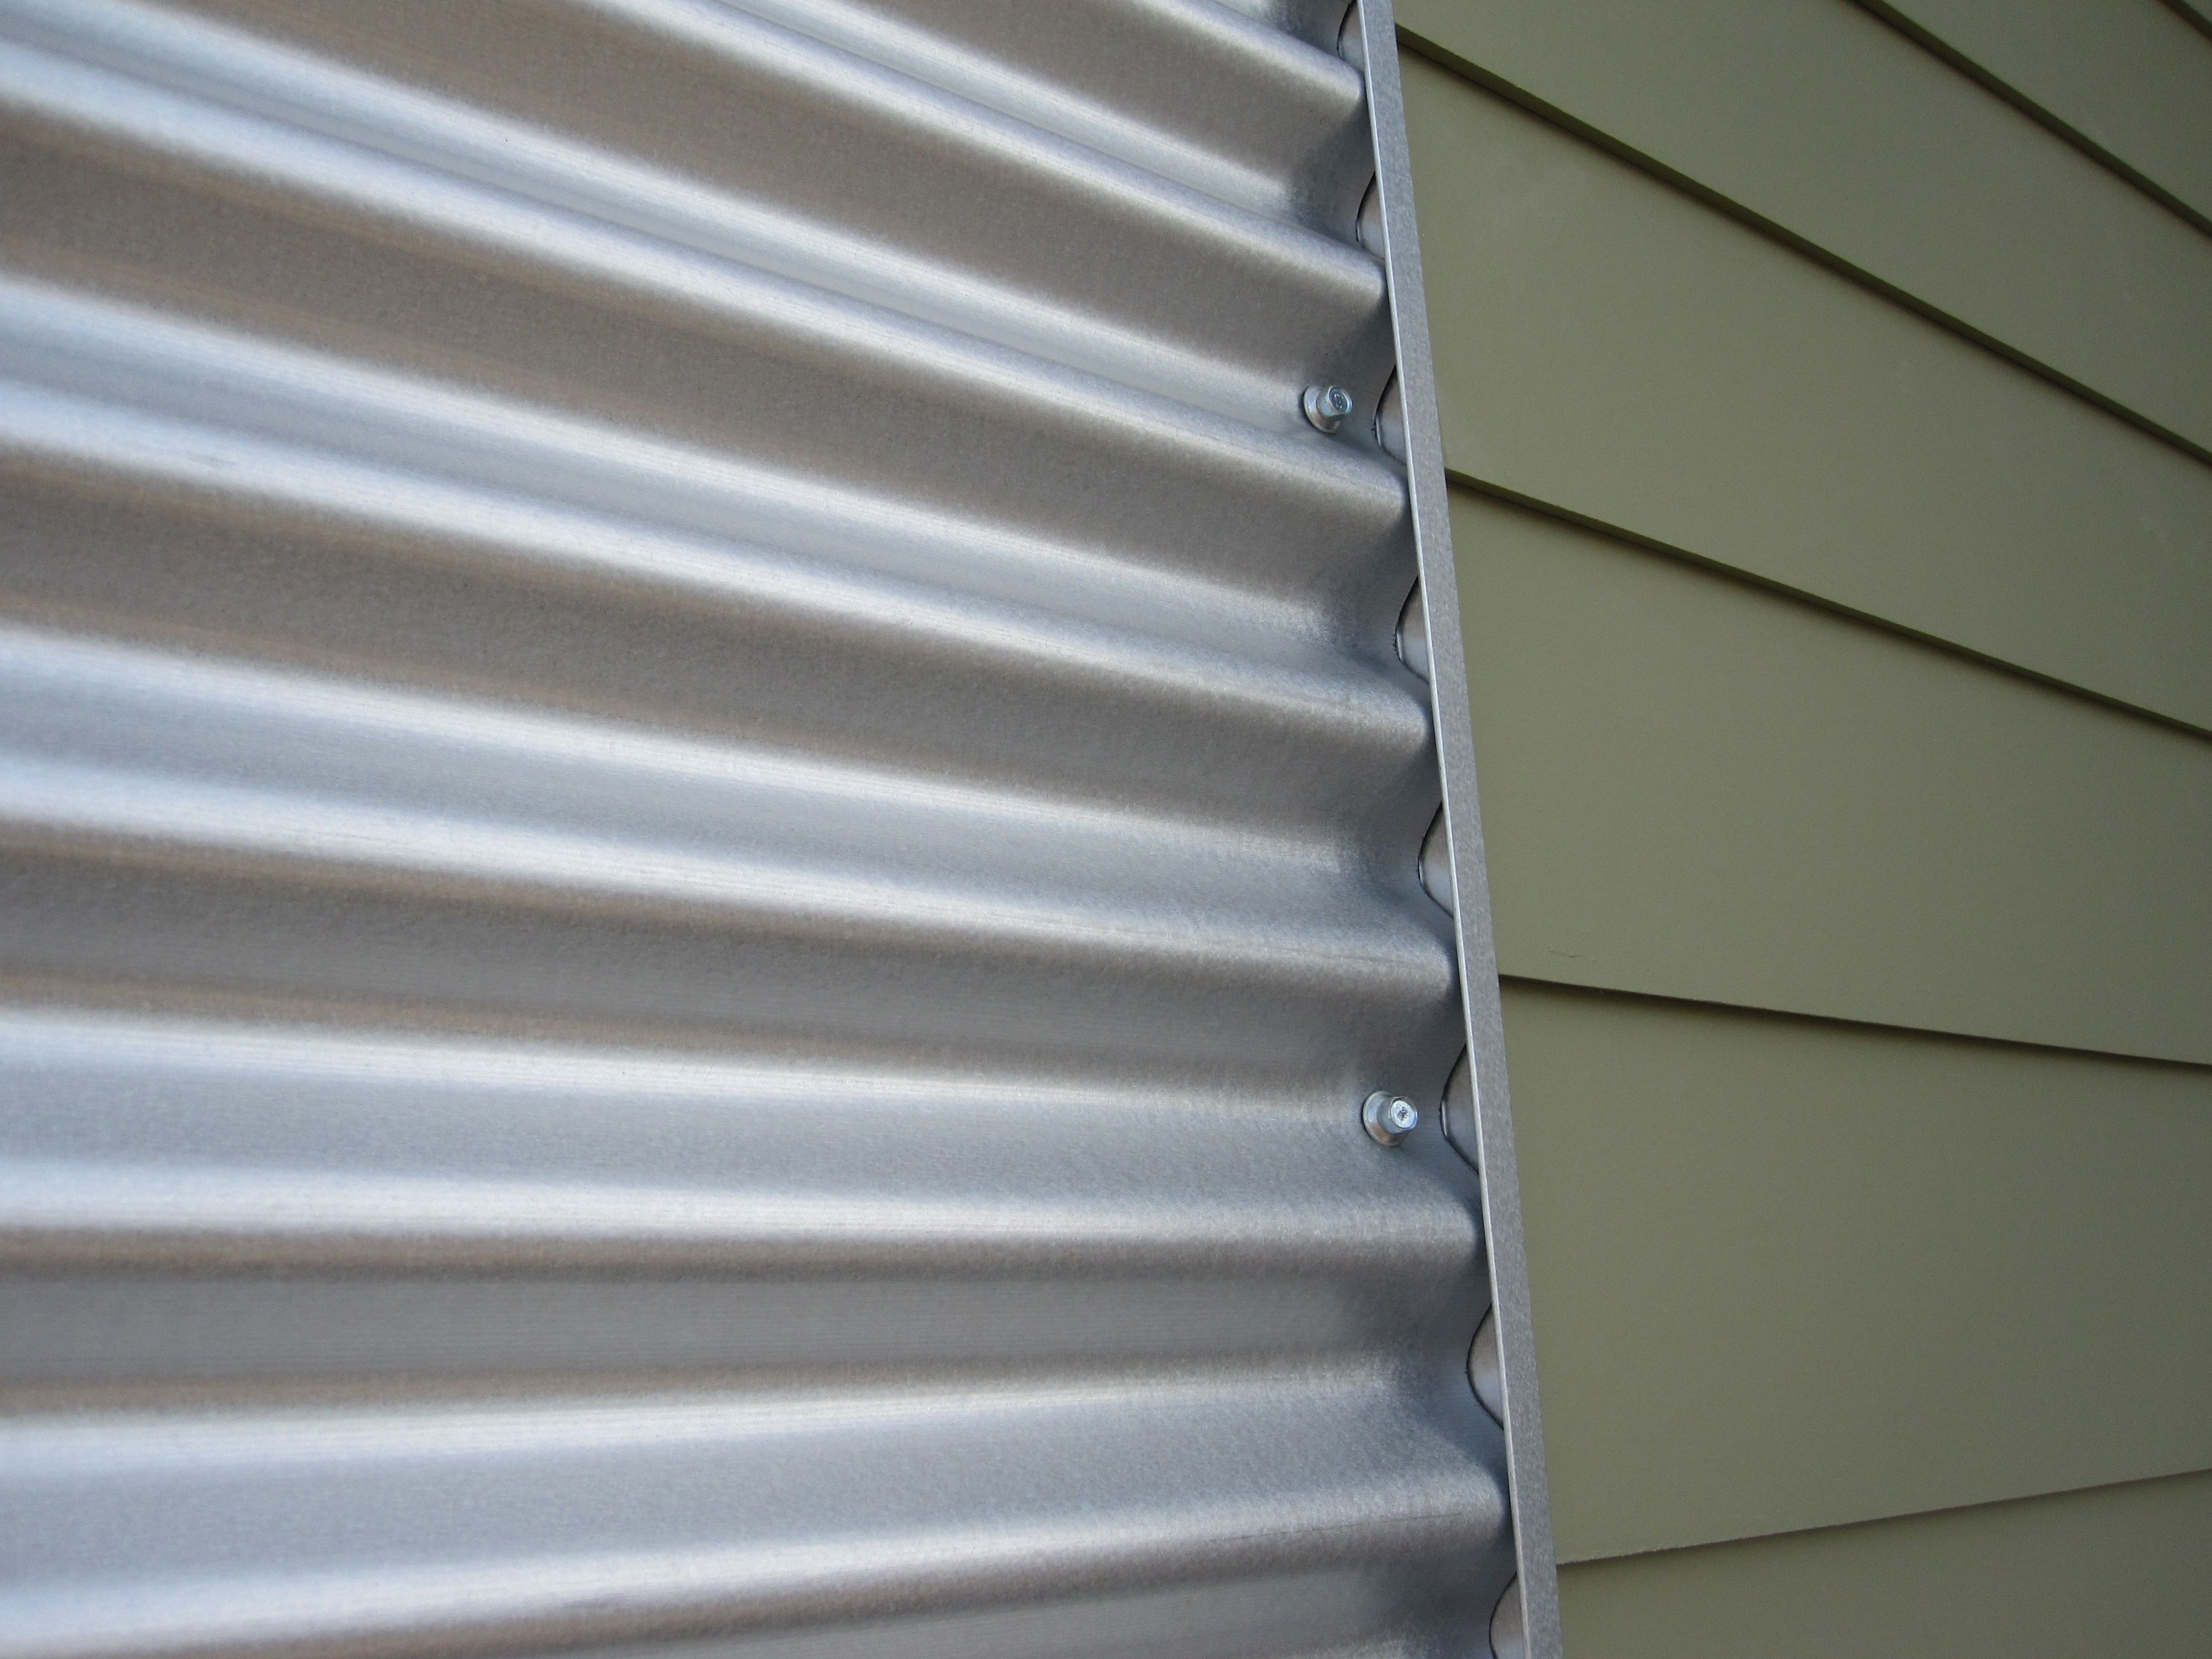 Images about corrugated metal on pinterest - Vinyl Siding With Modern Corrugated Metal Very Unique Look